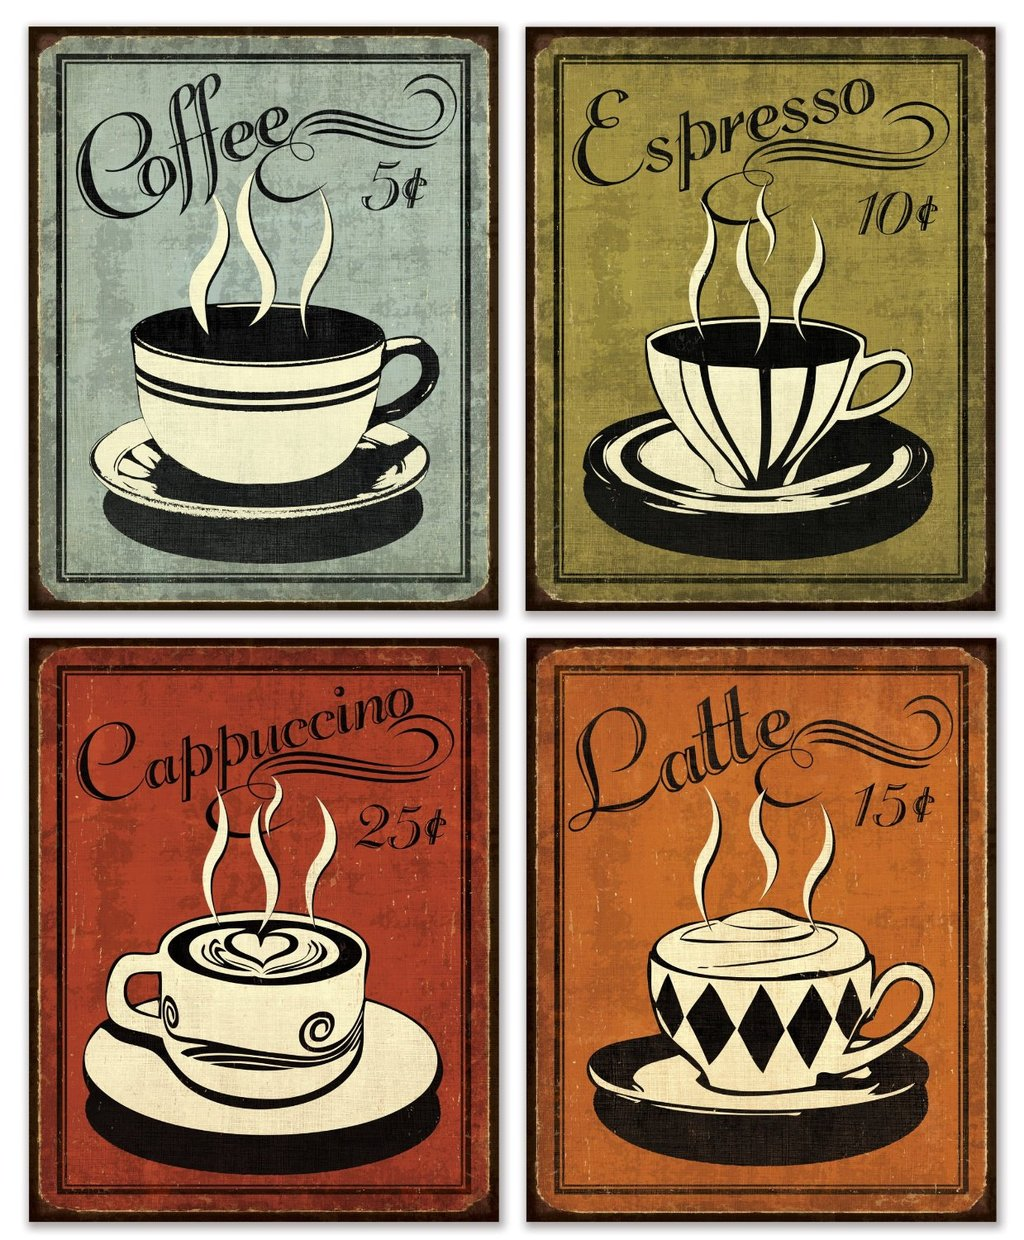 Coffee Posters Retro ~ Retro coffee set by n harbick x art print poster ebay